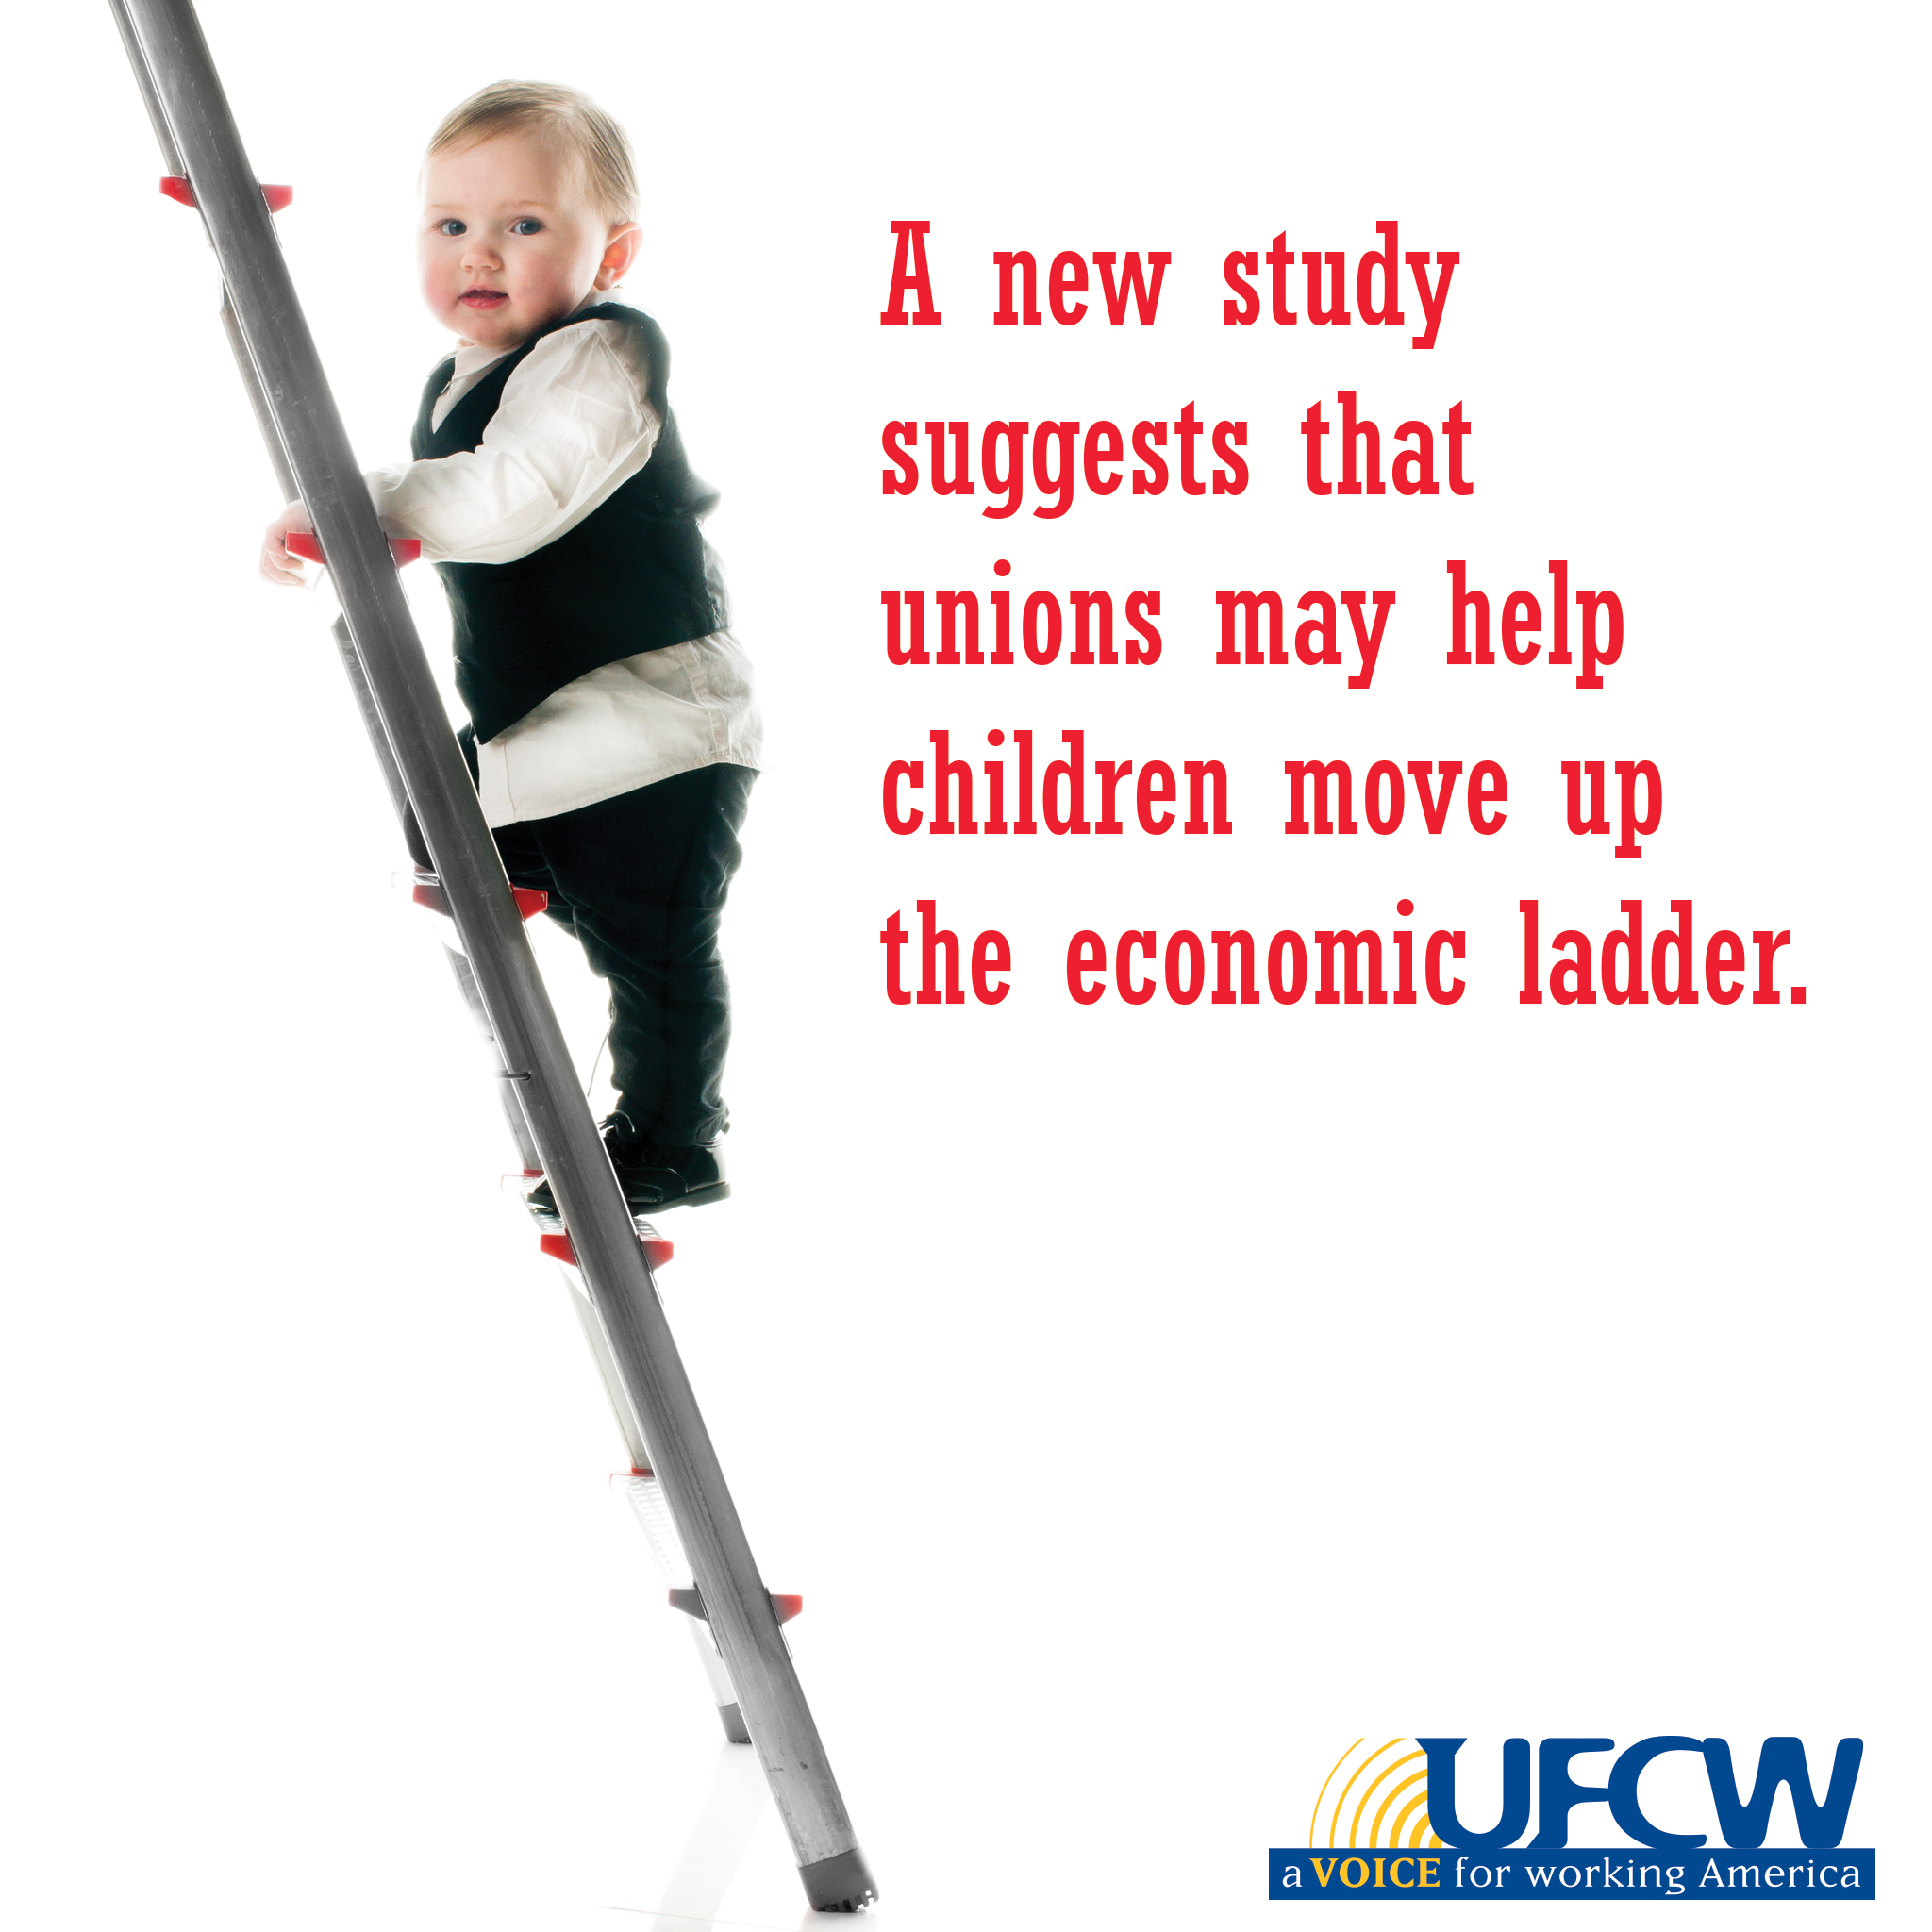 Unions-Help-Children-Move-Up-Ladder